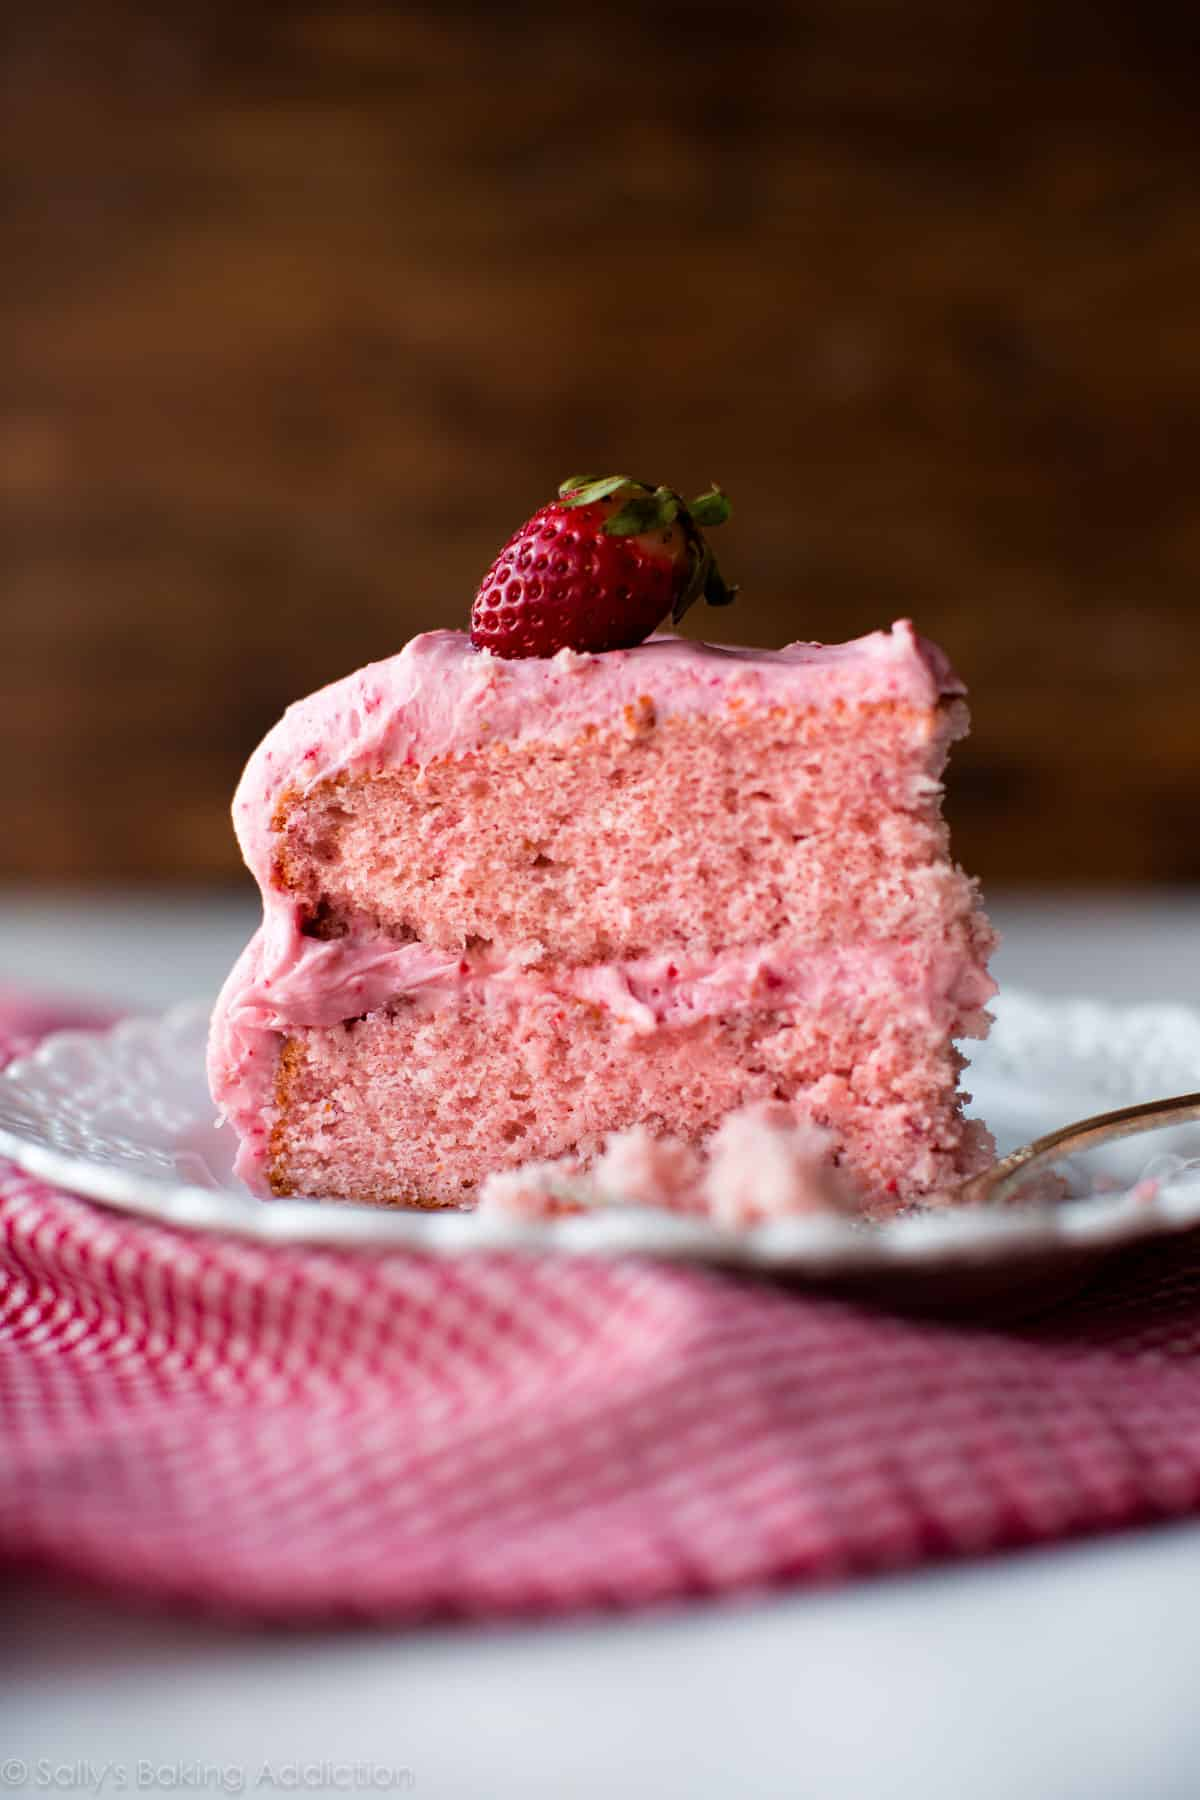 Best Frosting For Strawberry Cake